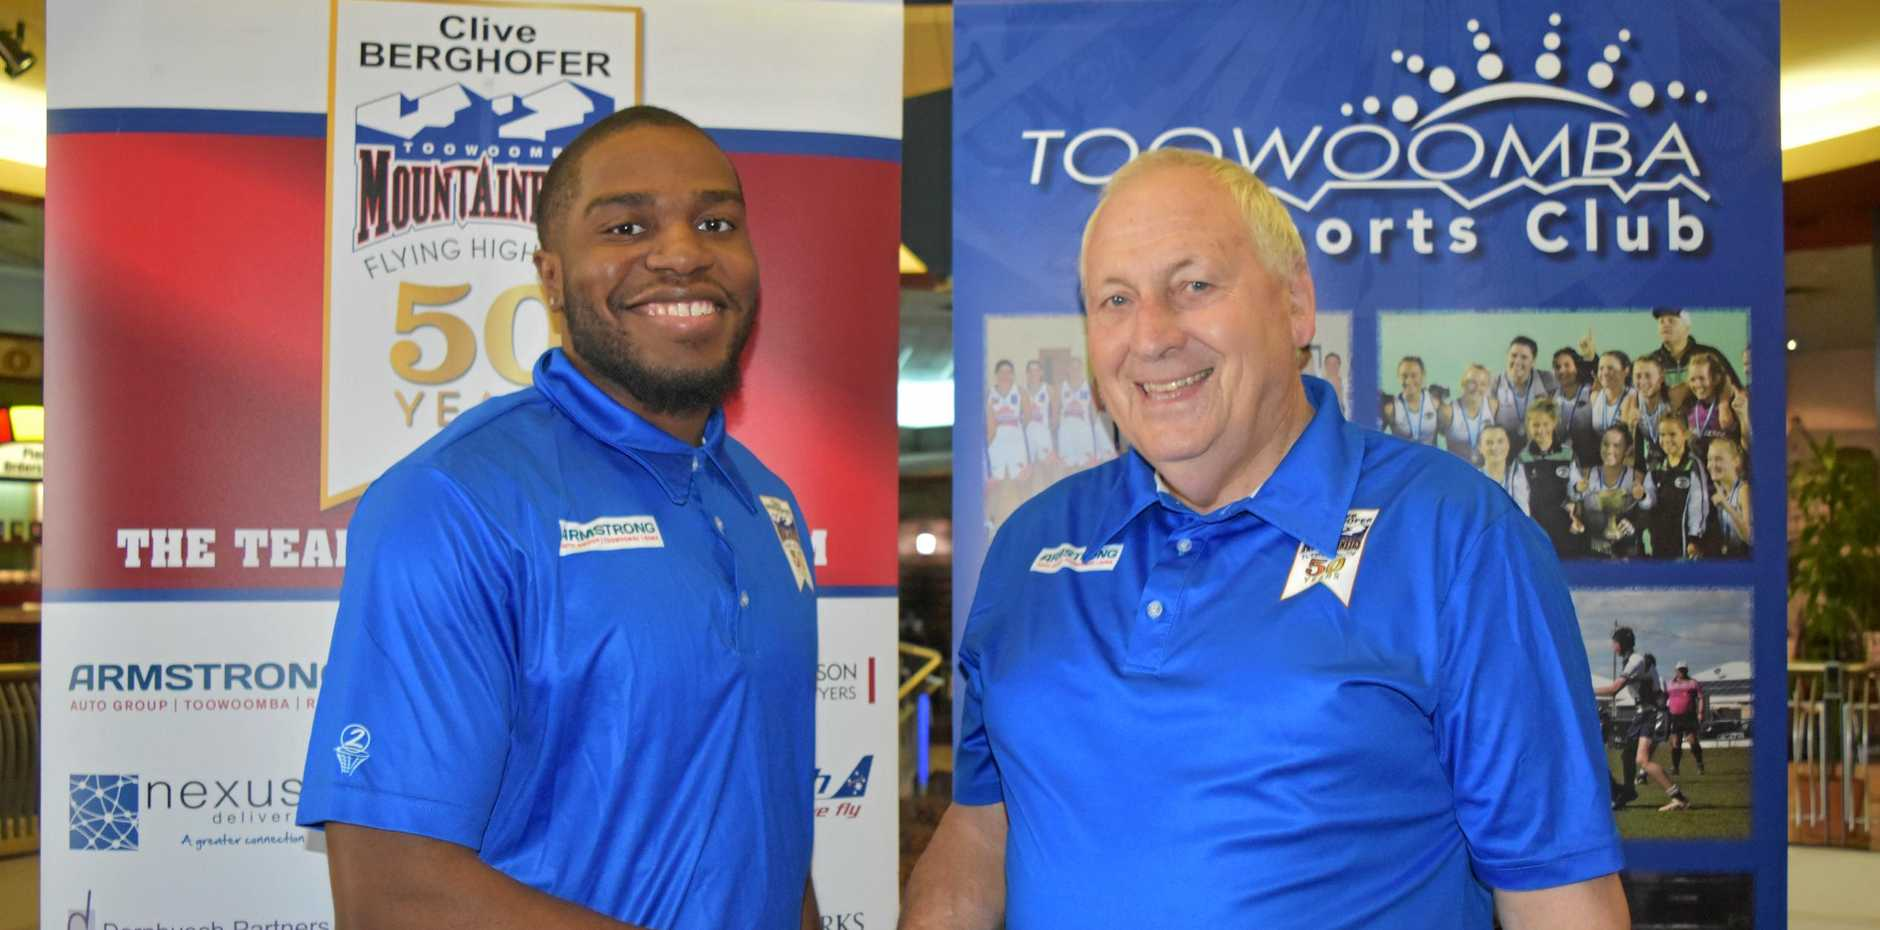 IMPORT SIGNING: New Toowoomba Mountaineers recruit Damon Bozeman (left) with chairman John Gouldson.